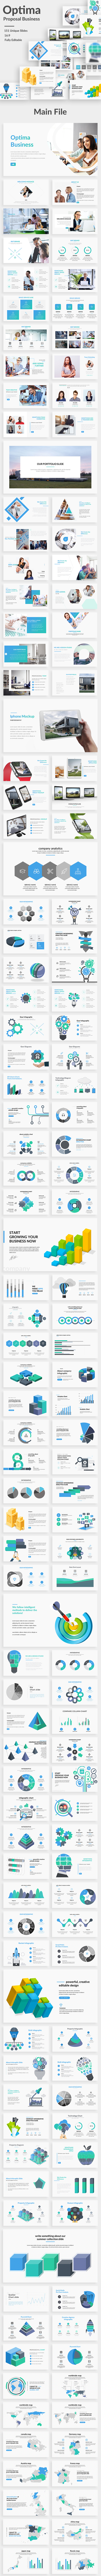 Optima Proposal Business Powerpoint Template - Business PowerPoint Templates